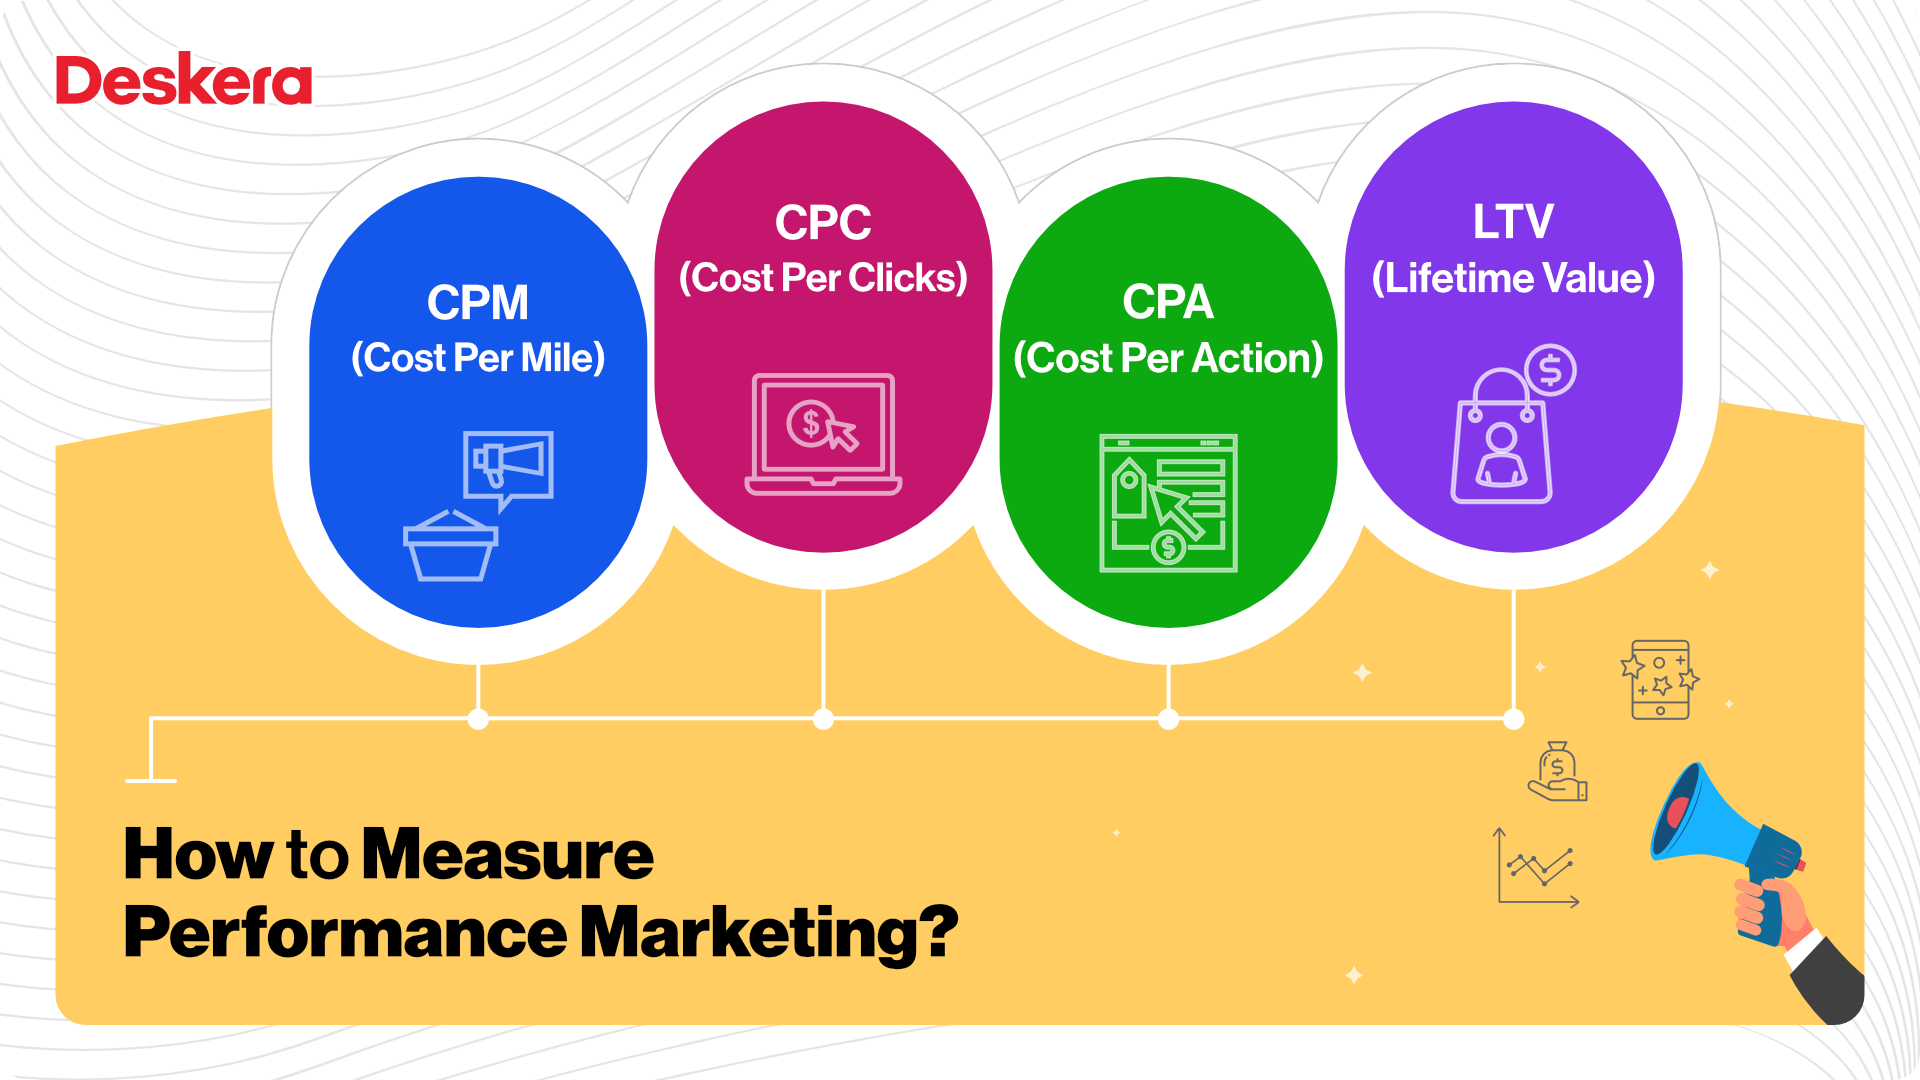 How to Measure Performance Marketing?